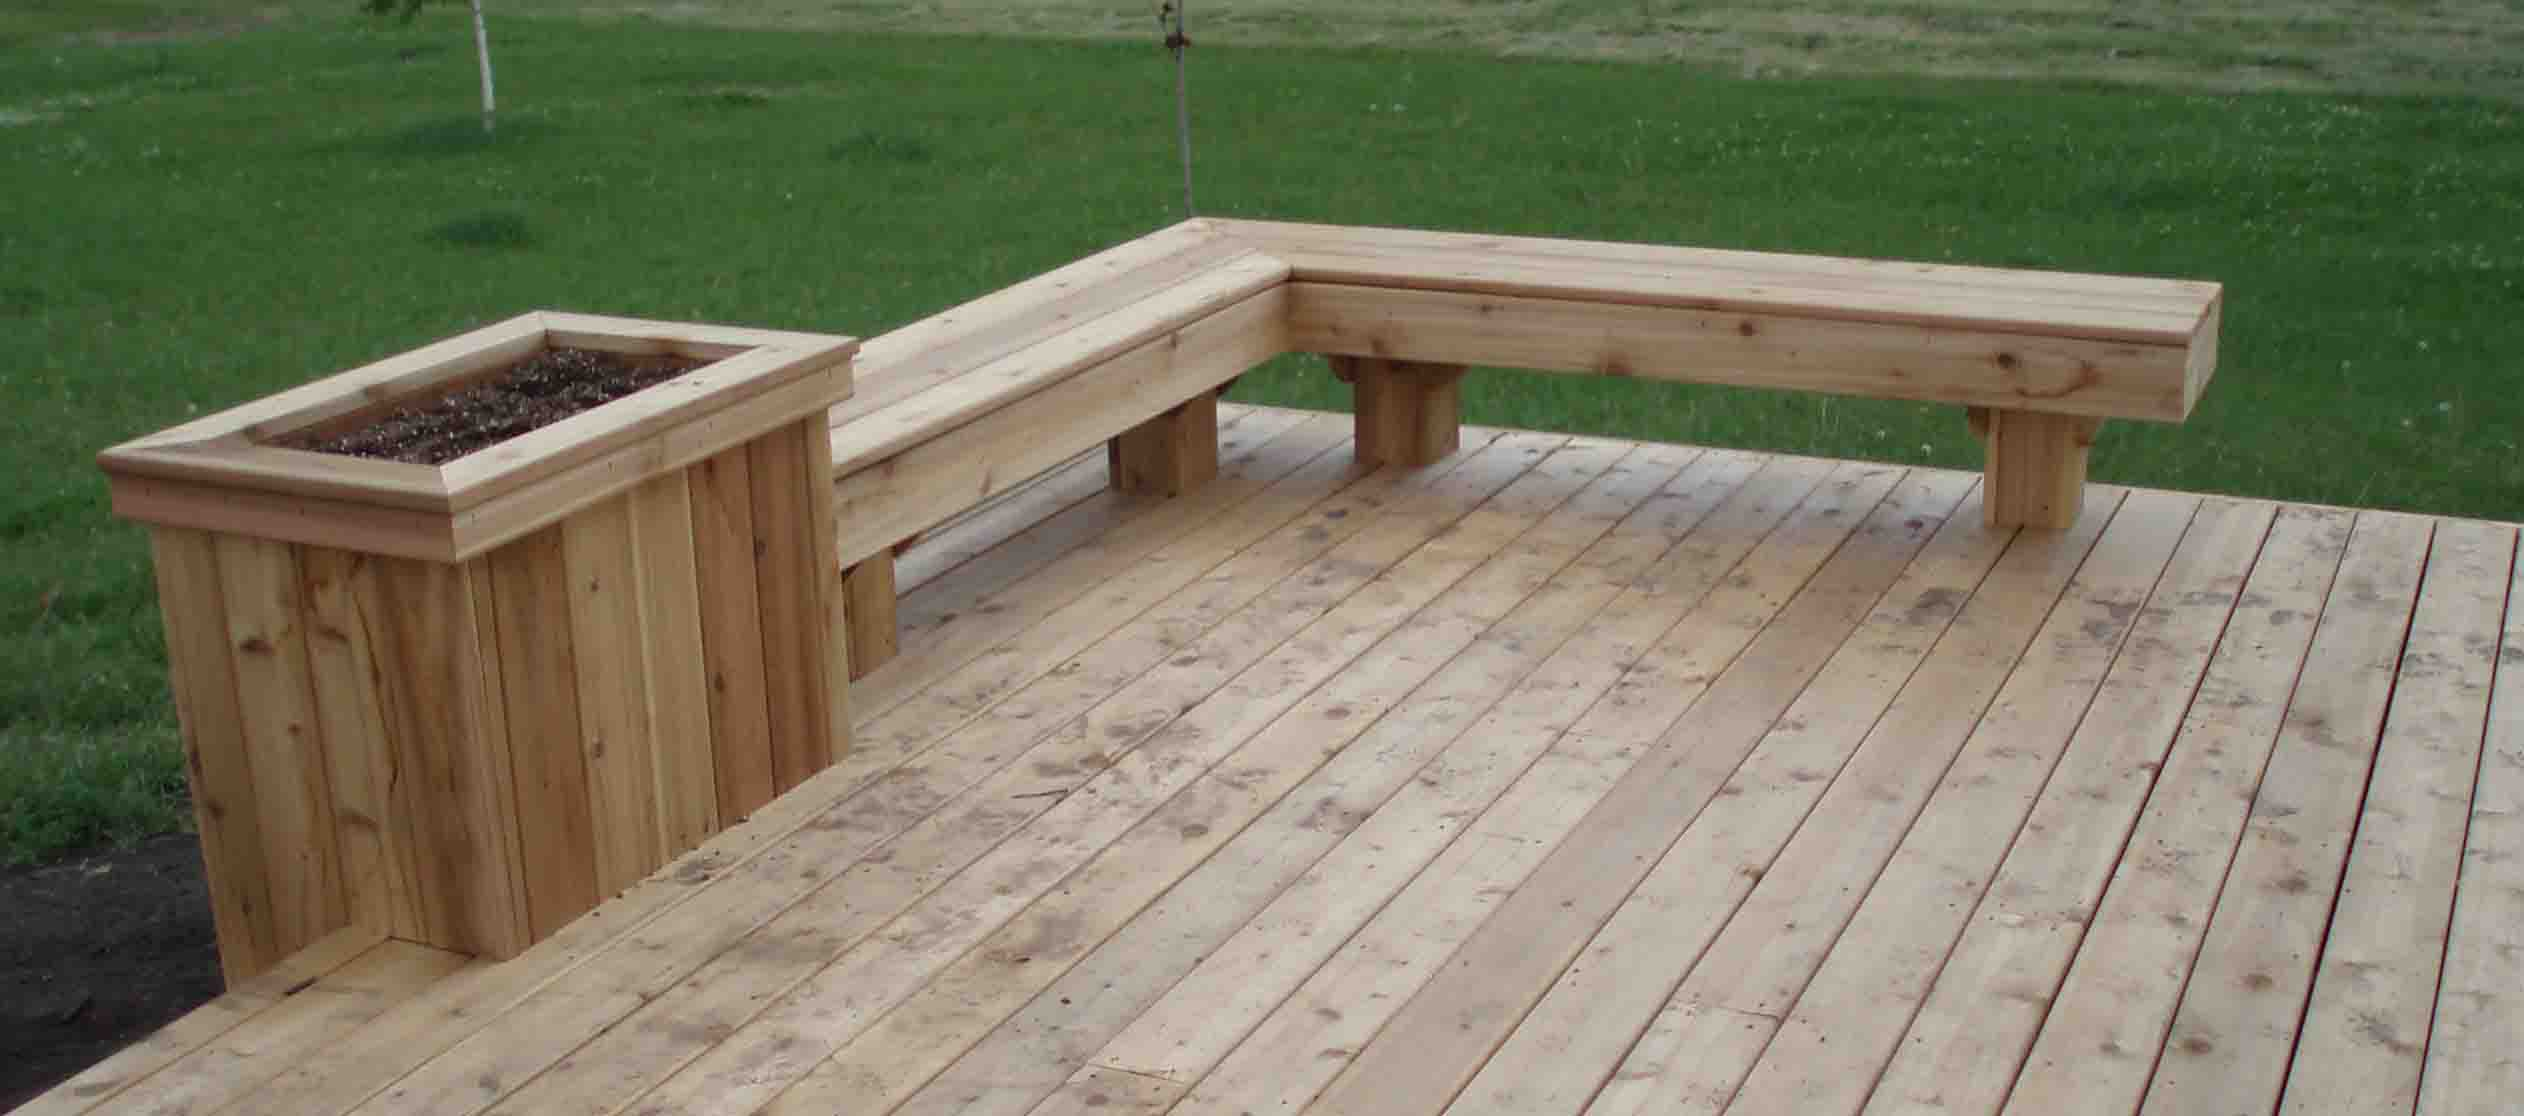 Cedar Deck Designs On Pinterest Deck Benches Cedar Deck And Decks